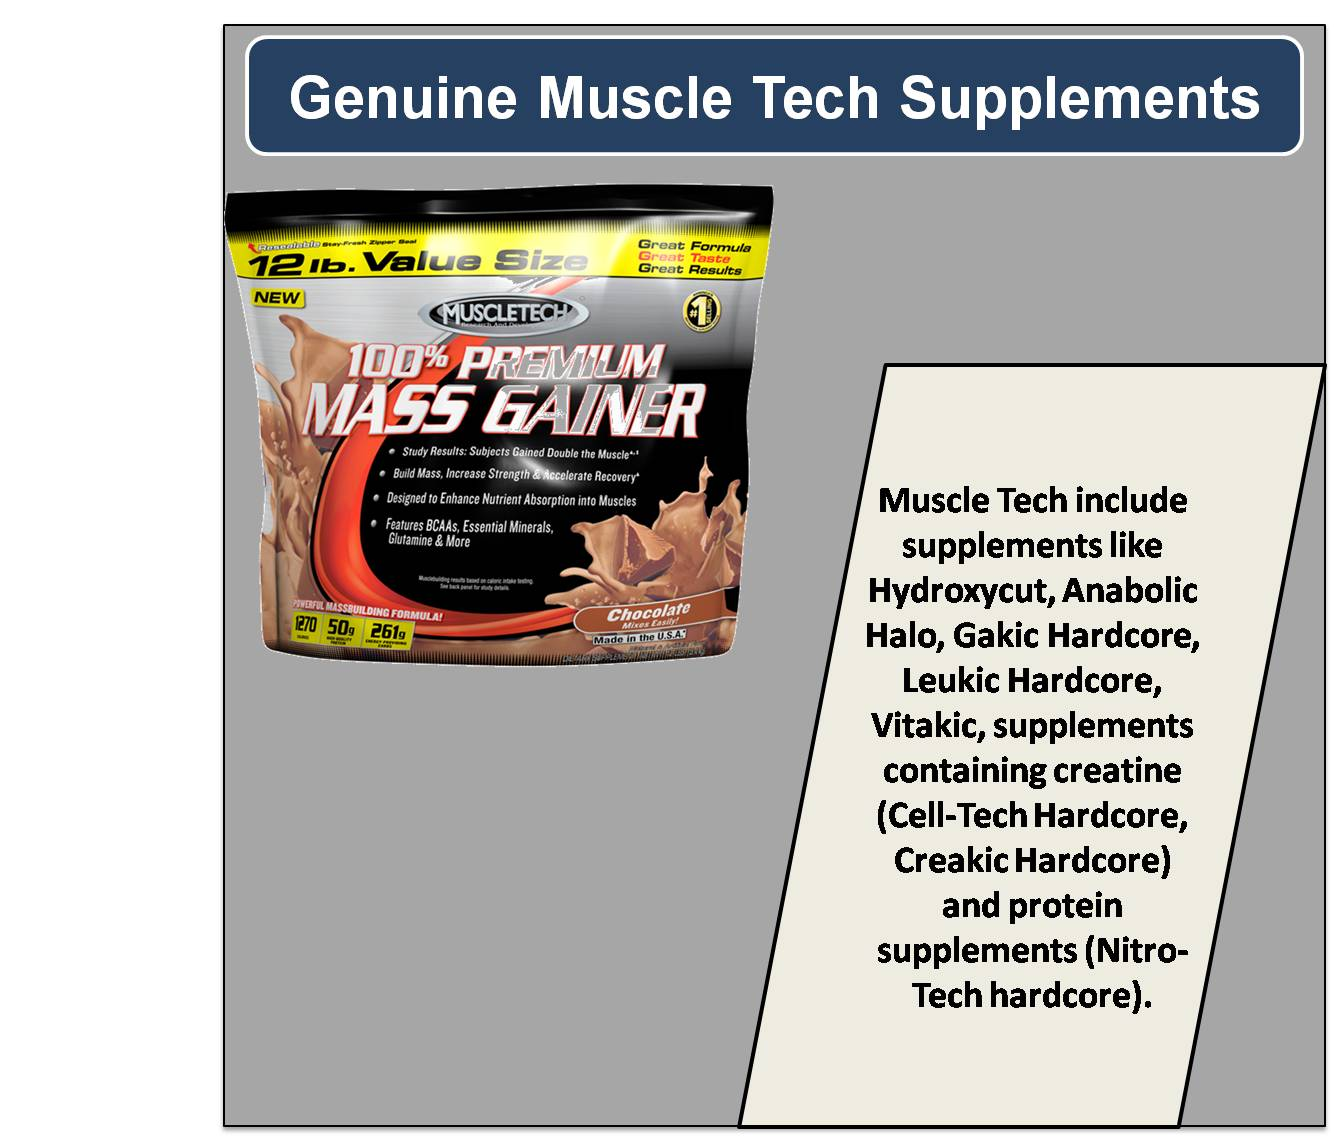 Genuine Muscle Tech Supplements